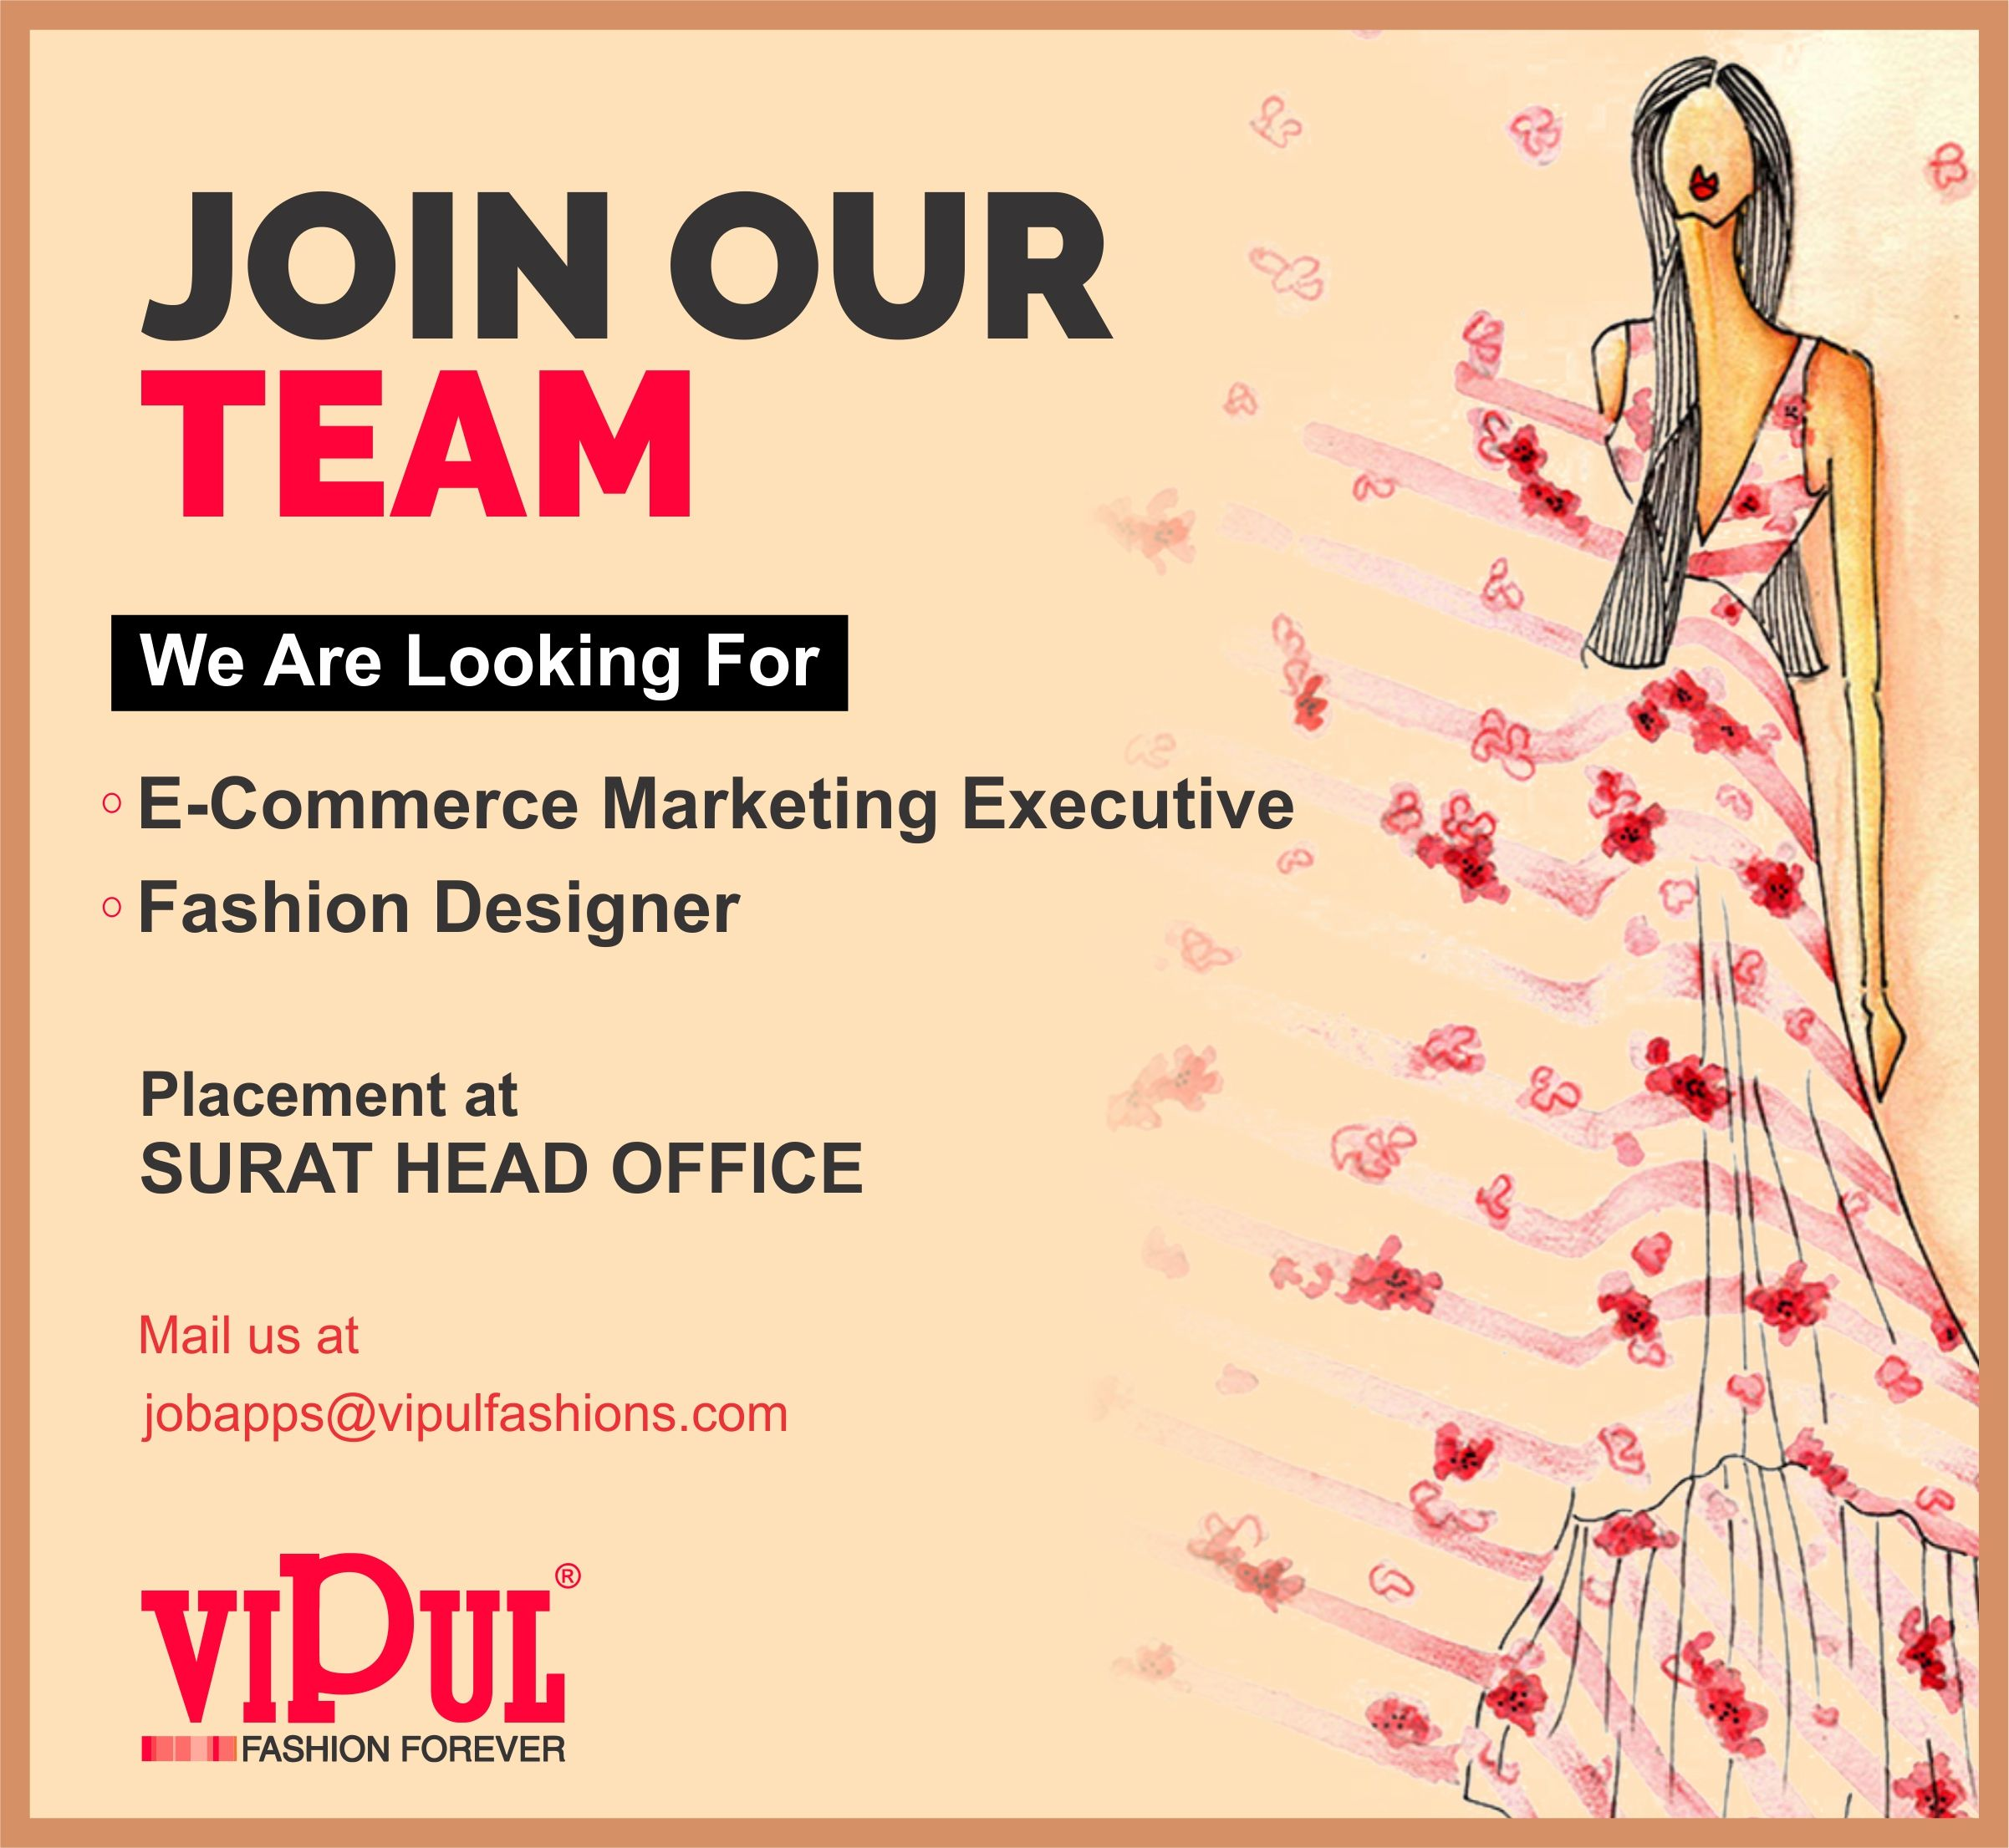 We Are Hiring Make Vipul Fashions Next Step For Your Career We Have Exciting Openings For Those Who Can Make New Id Executive Fashion Fashion Forever Fashion